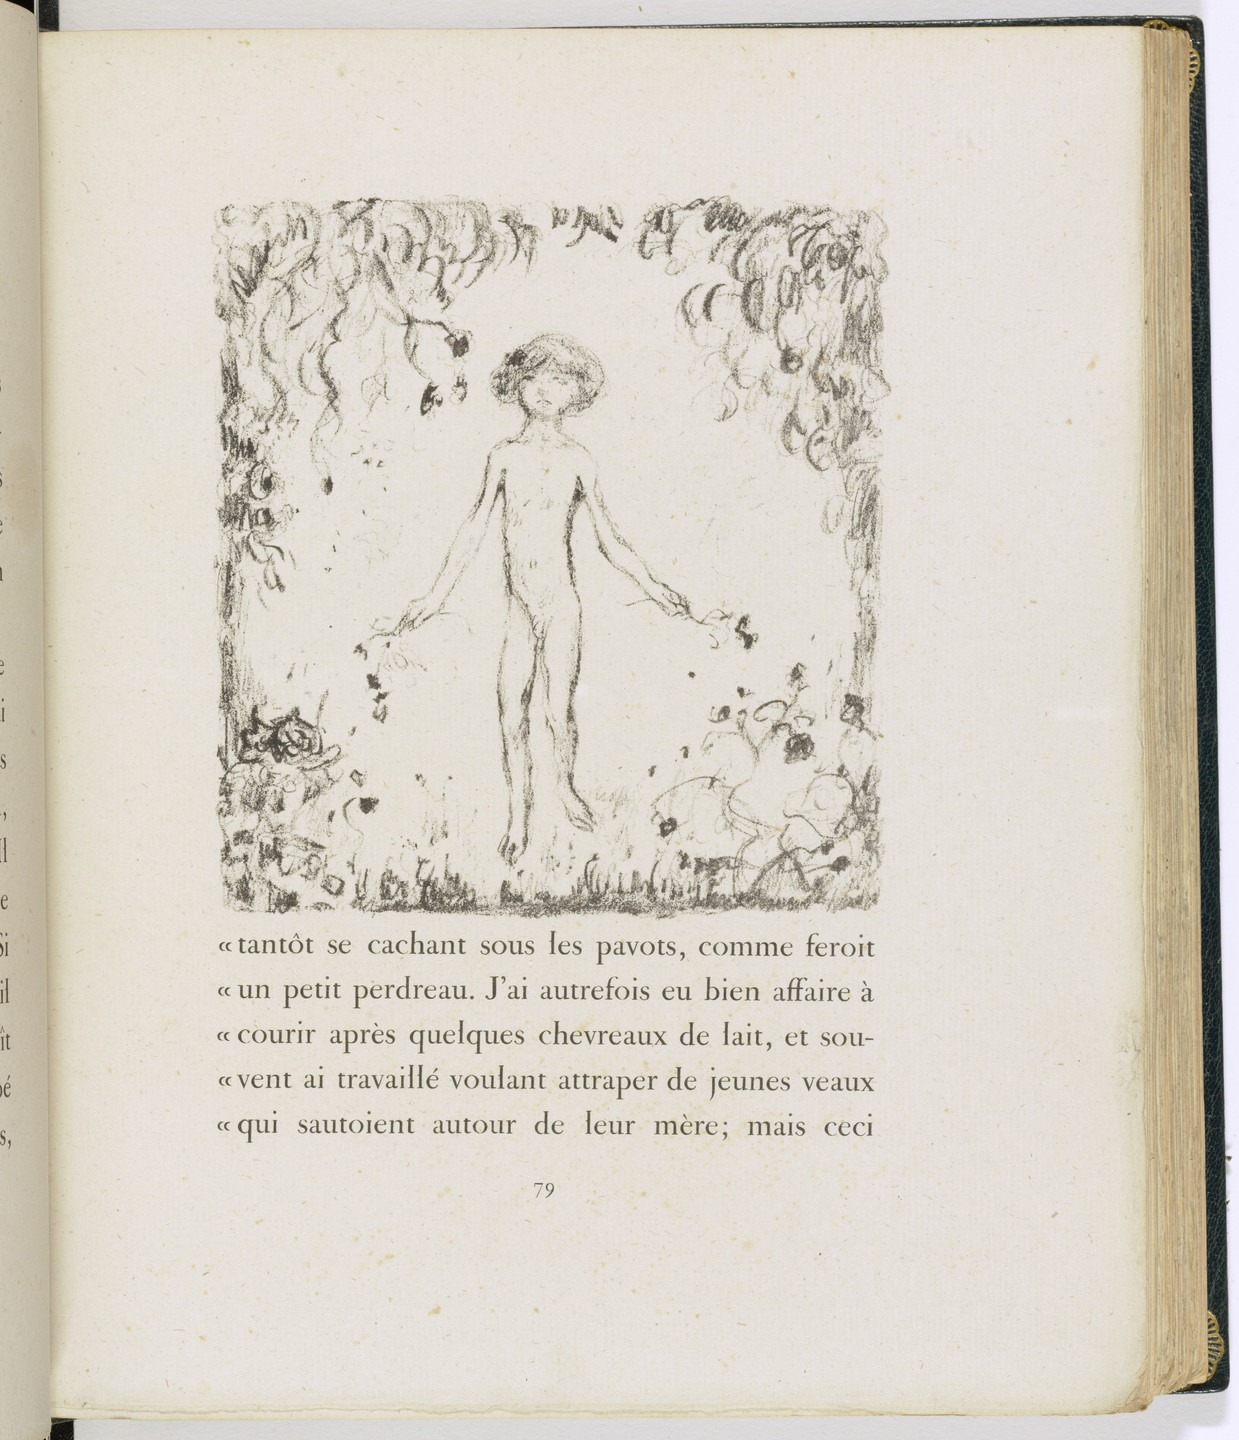 Pierre Bonnard. In-text plate (page 79) from Daphnis et Chloé. 1902